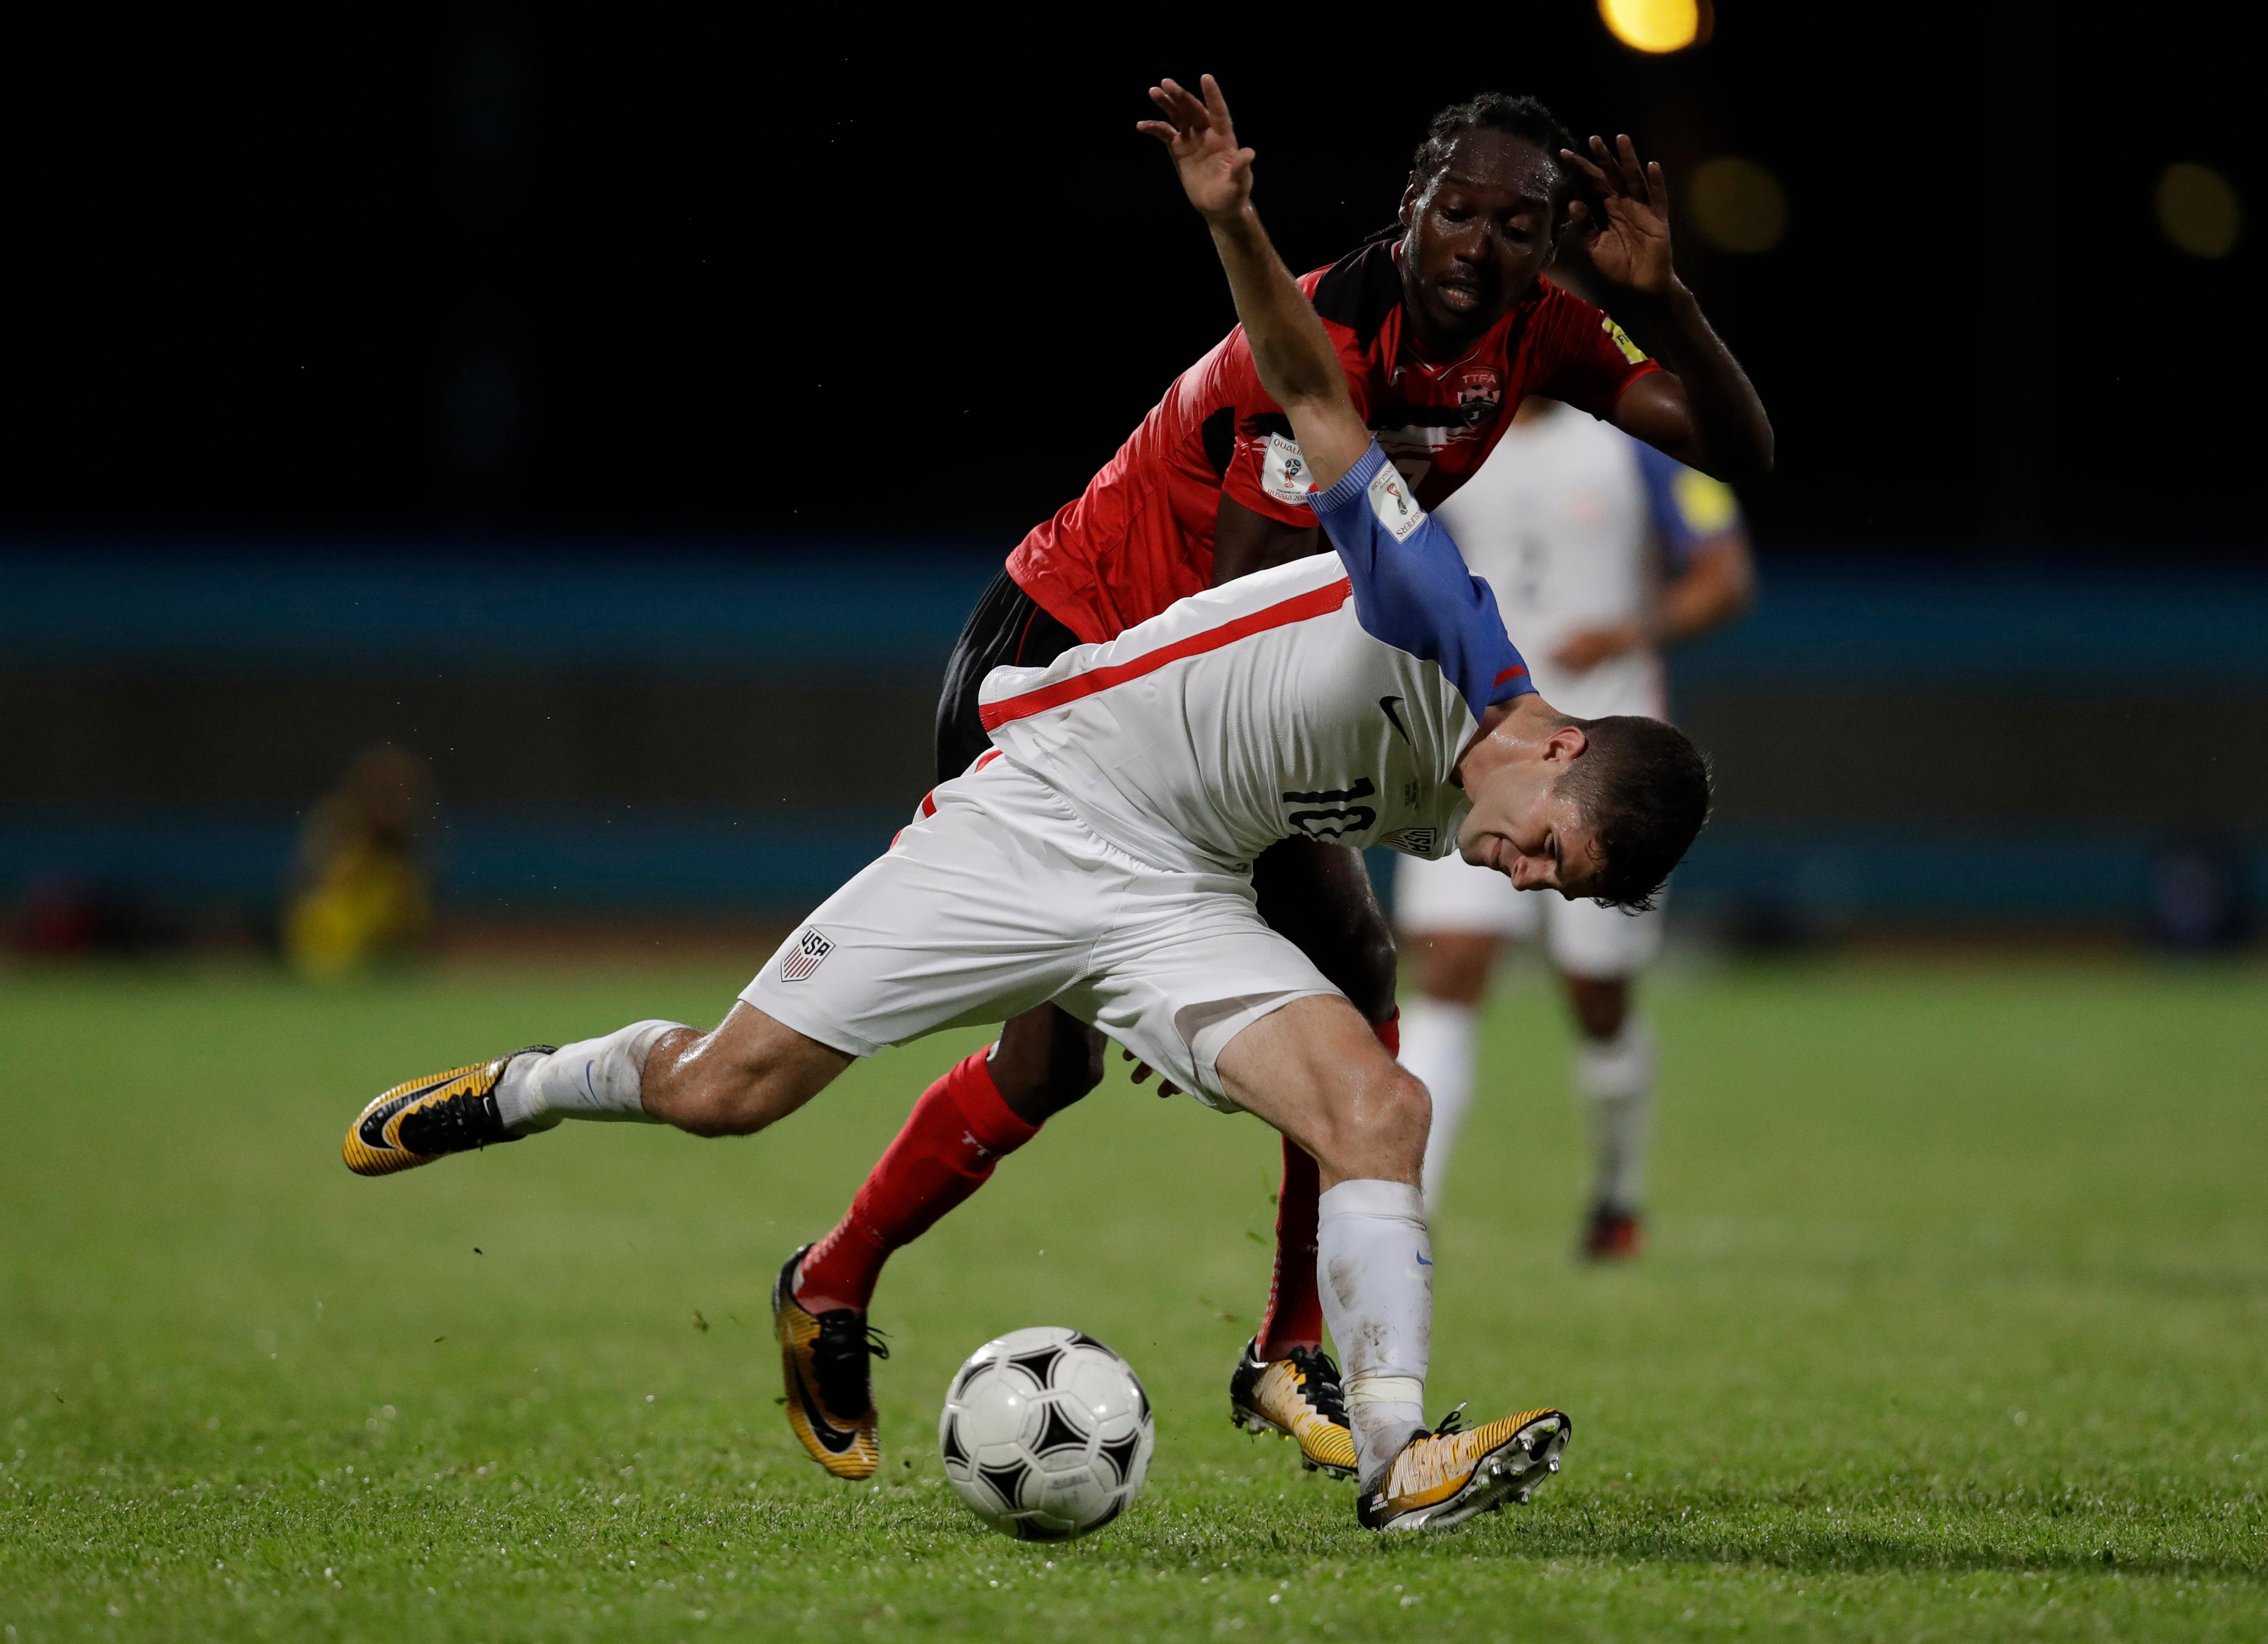 United States' Christian Pulisic, front, fights for control of the ball with Trinidad and Tobago's Nathan Lewis during a 2018 World Cup qualifying soccer match in Couva, Trinidad, Tuesday, Oct. 10, 2017. (AP Photo/Rebecca Blackwell)